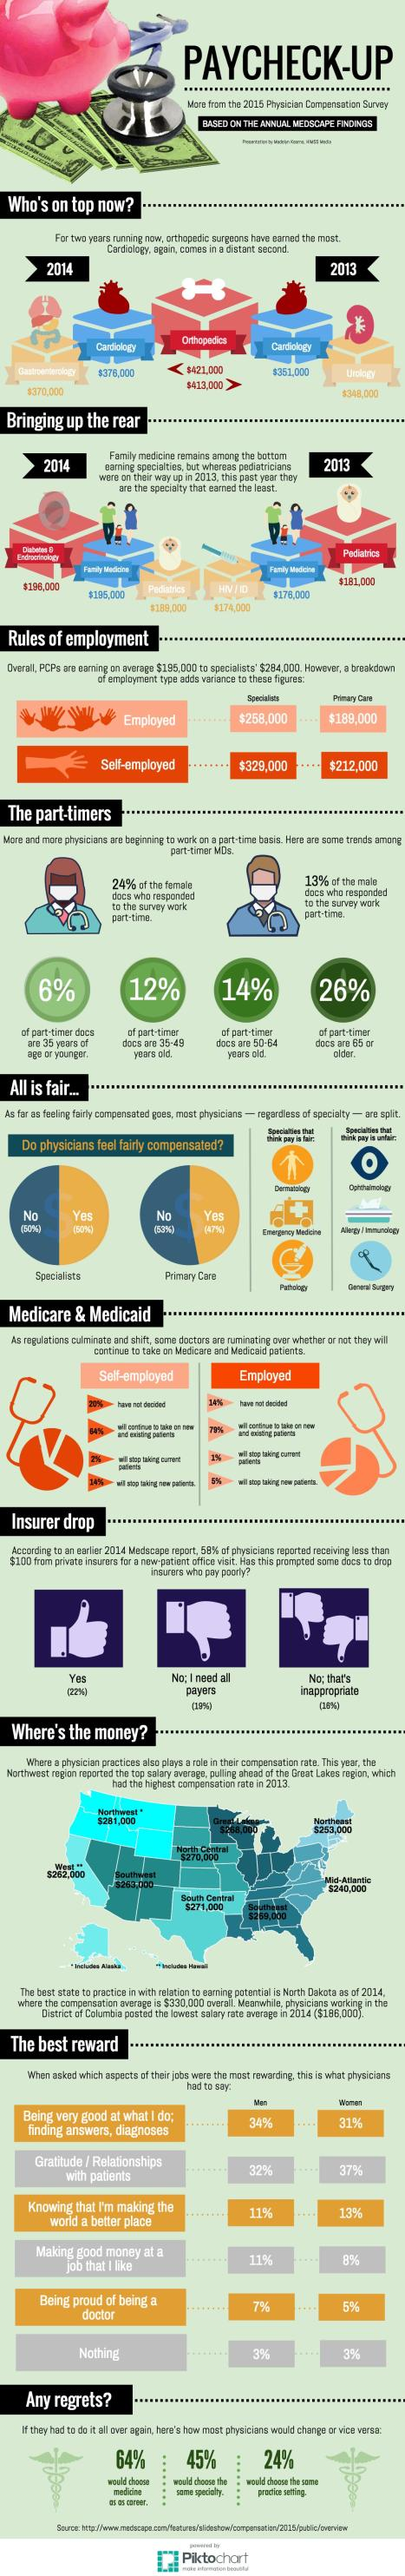 Medscape2015Report